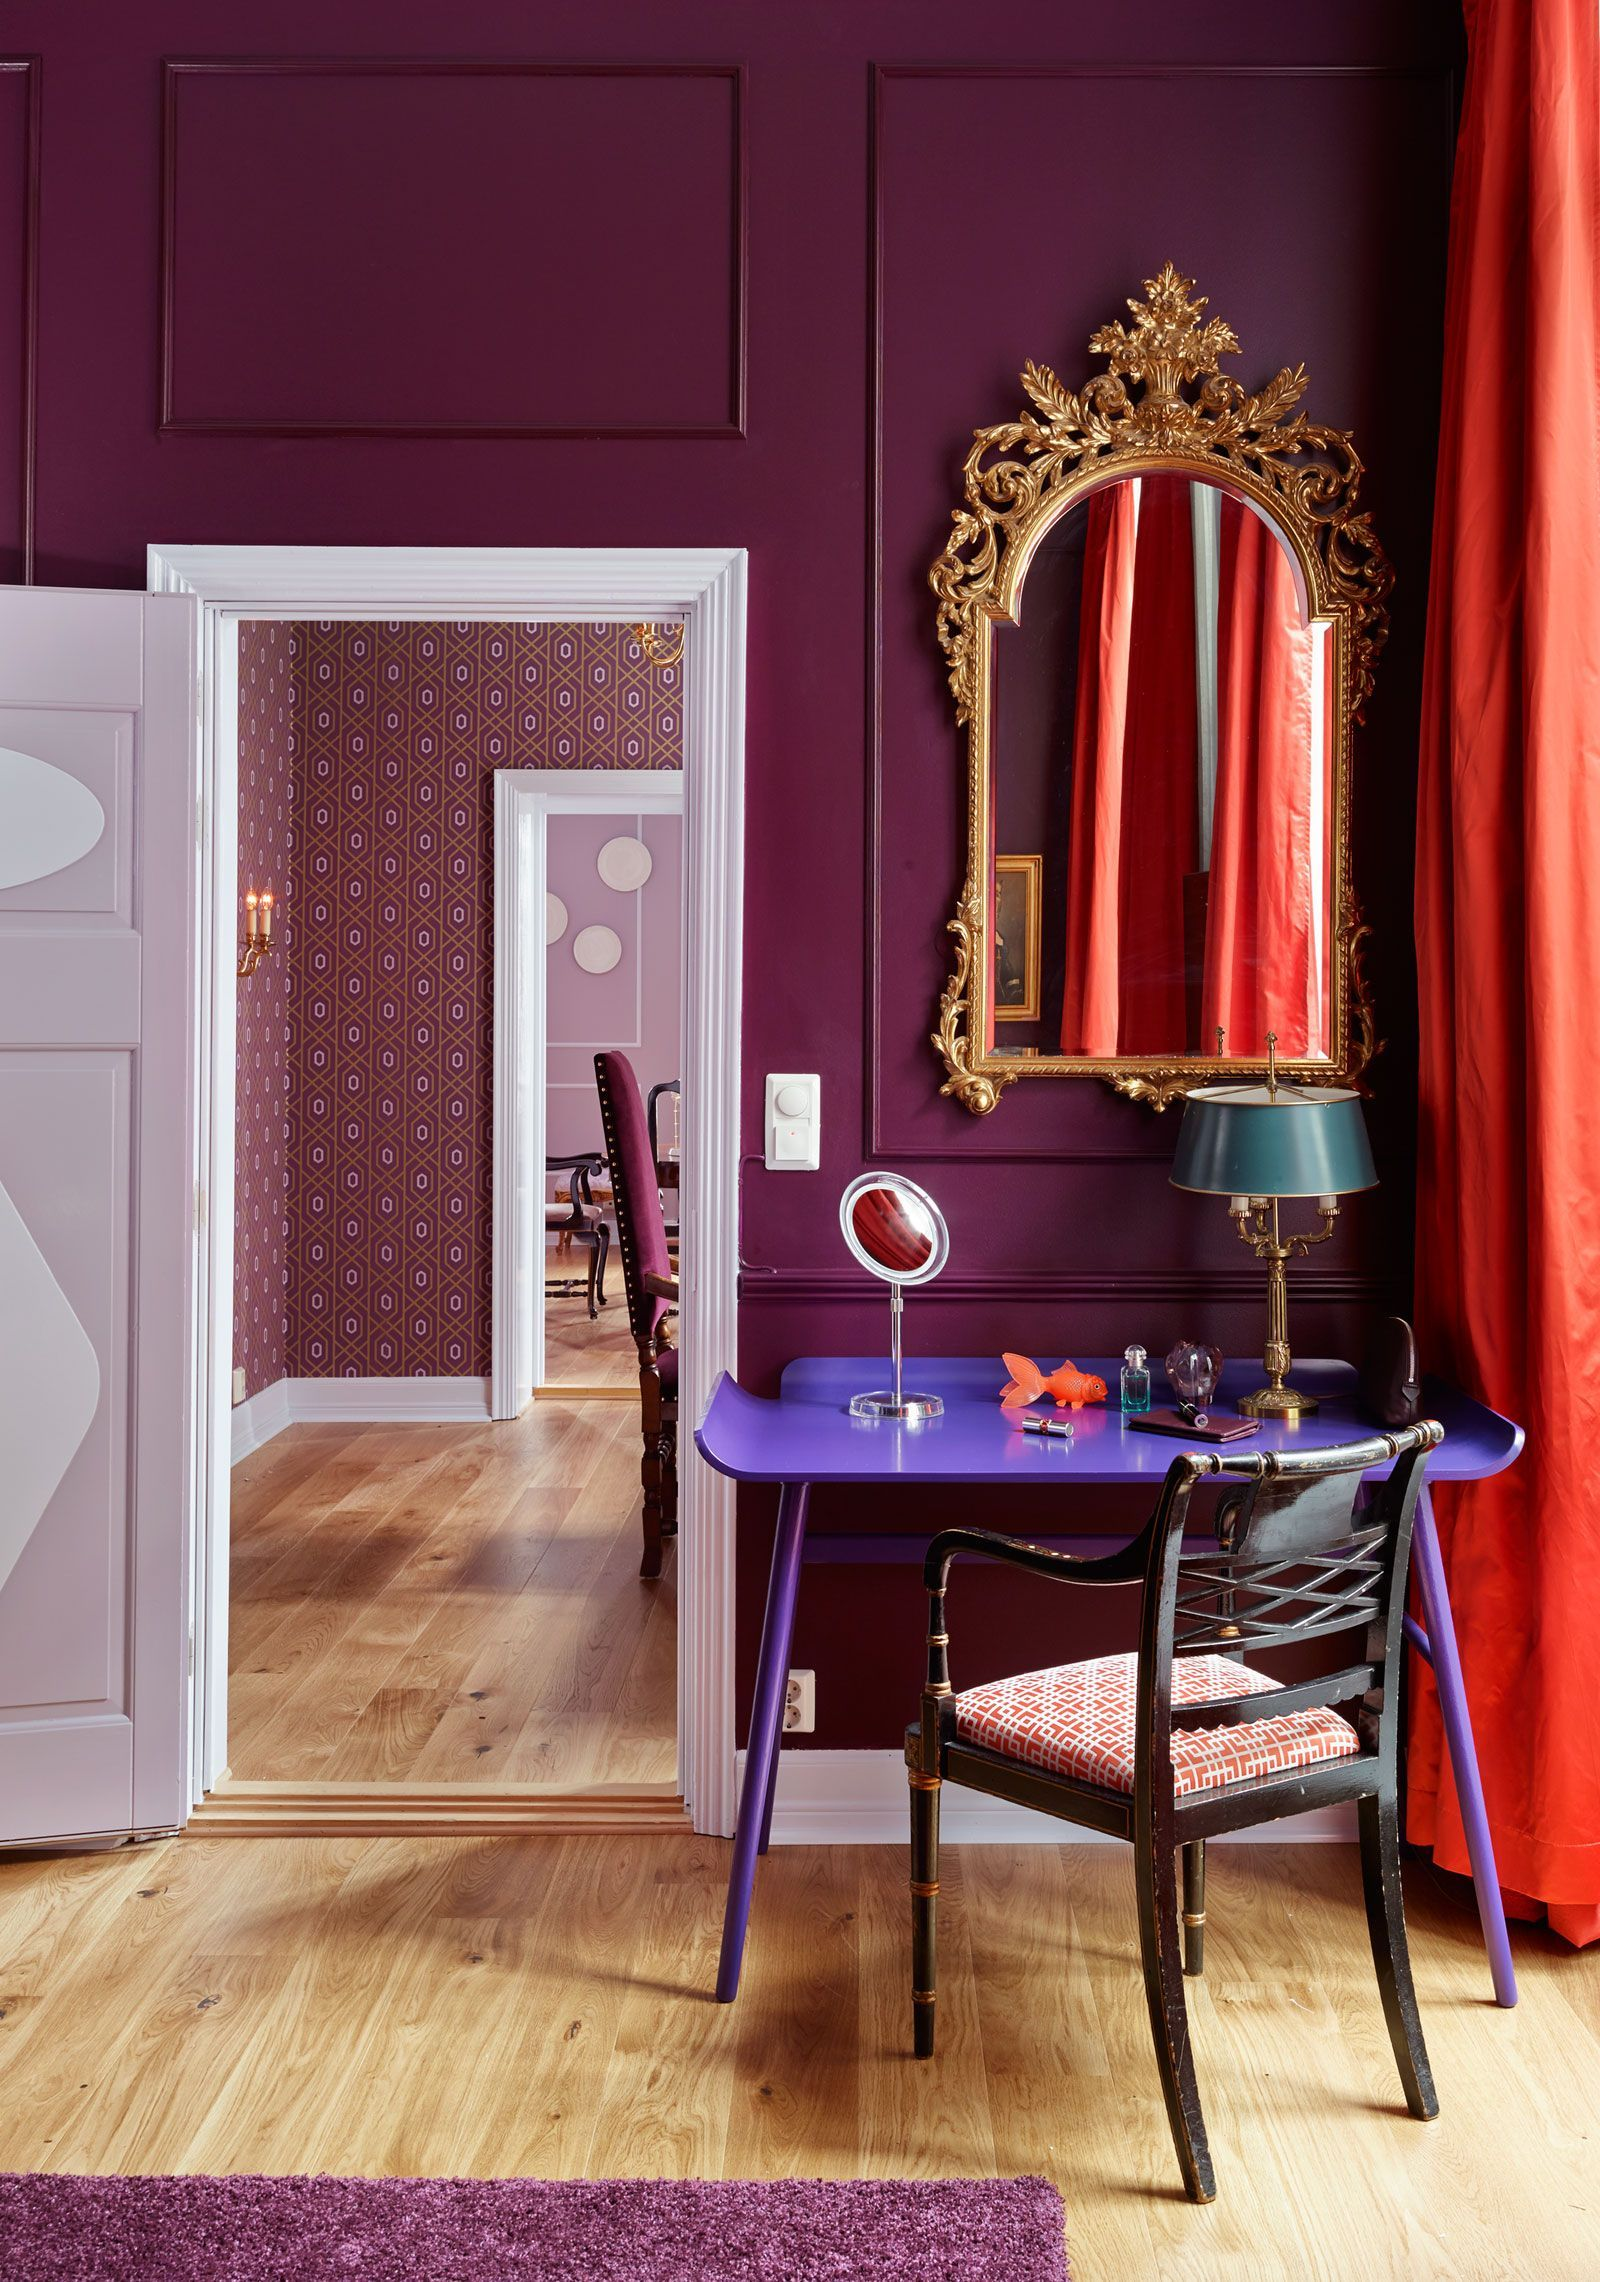 Wandfarbe Aubergine Aubergine Wall Color Home Decorating Trends Homedit Luxe